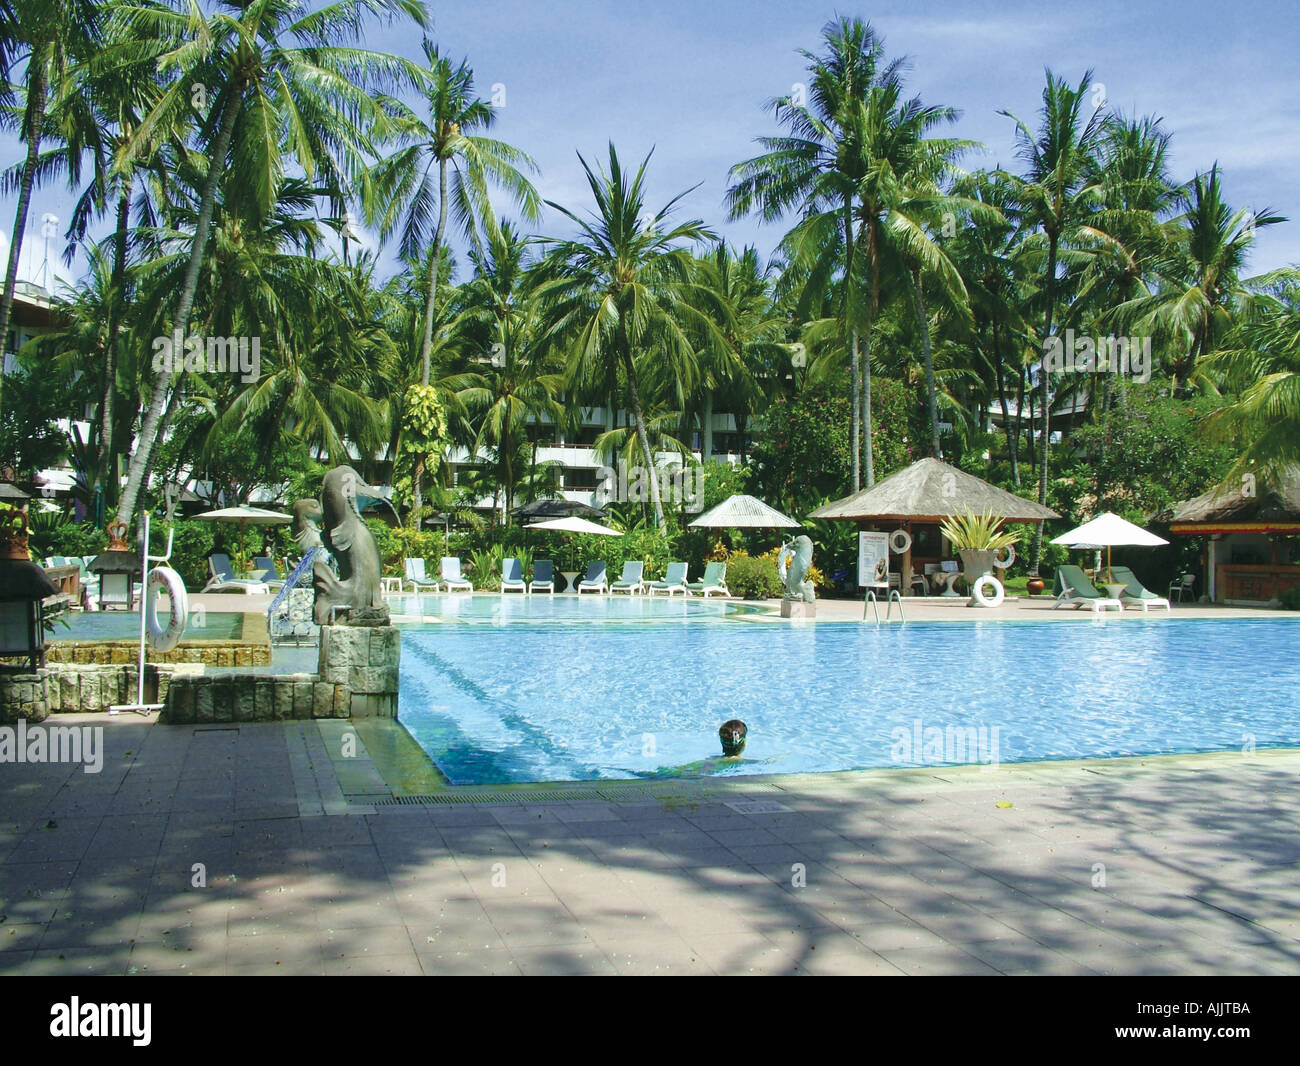 Panoramic View Of Palm Trees Around A Swimming Pool Stock Photo Royalty Free Image 4817081 Alamy